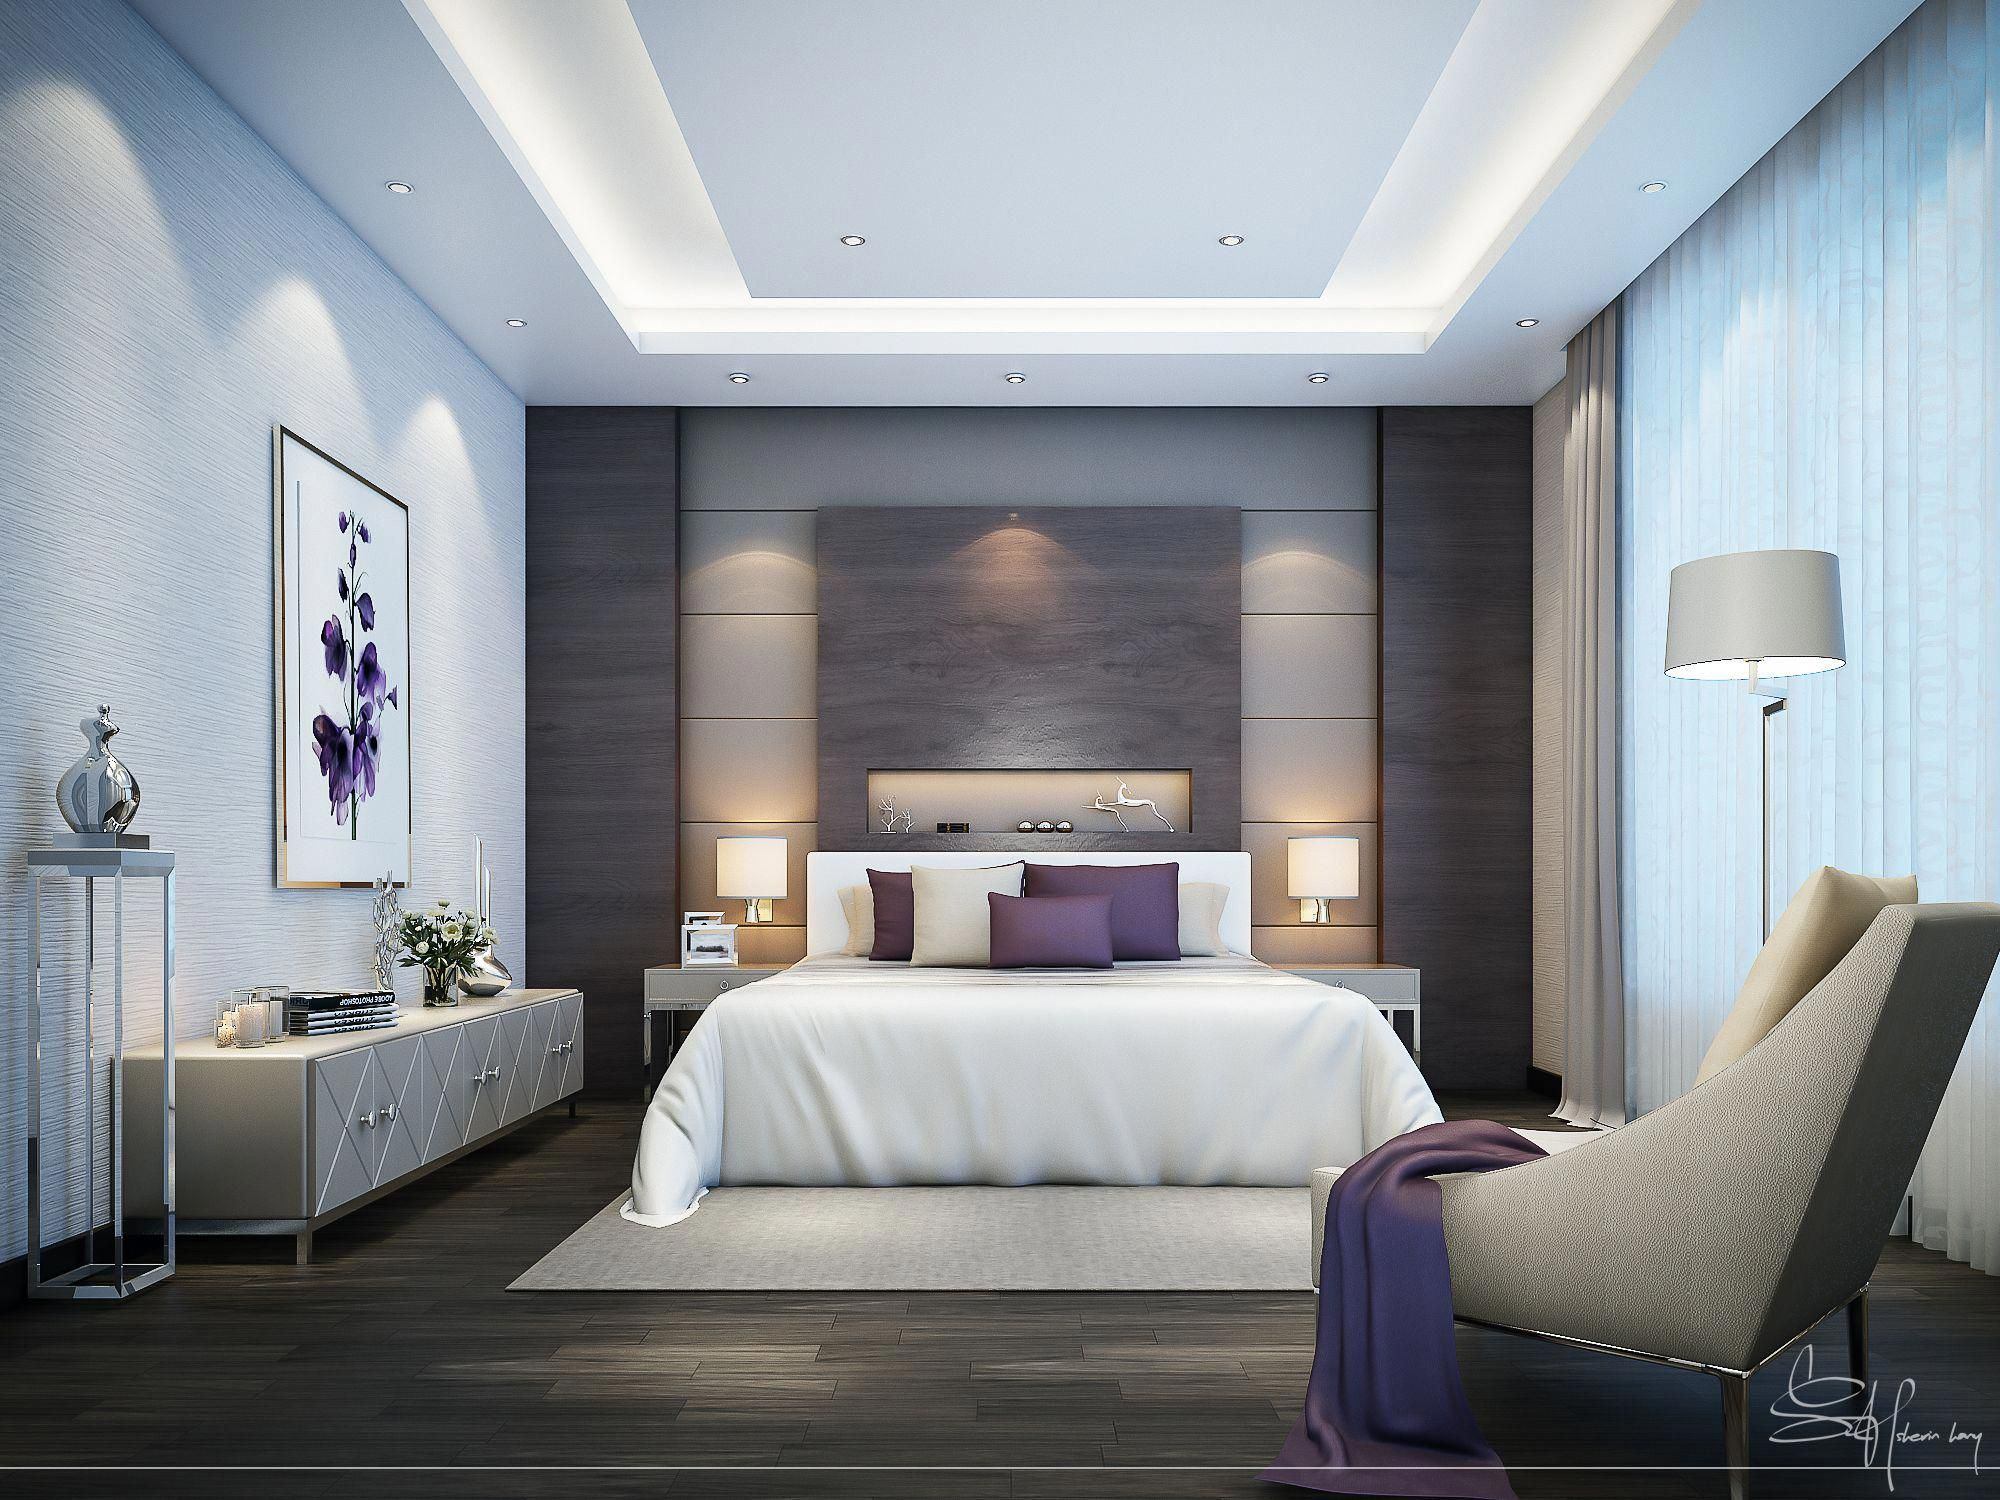 interior design for bedroom #bedroomdesign (With images ...